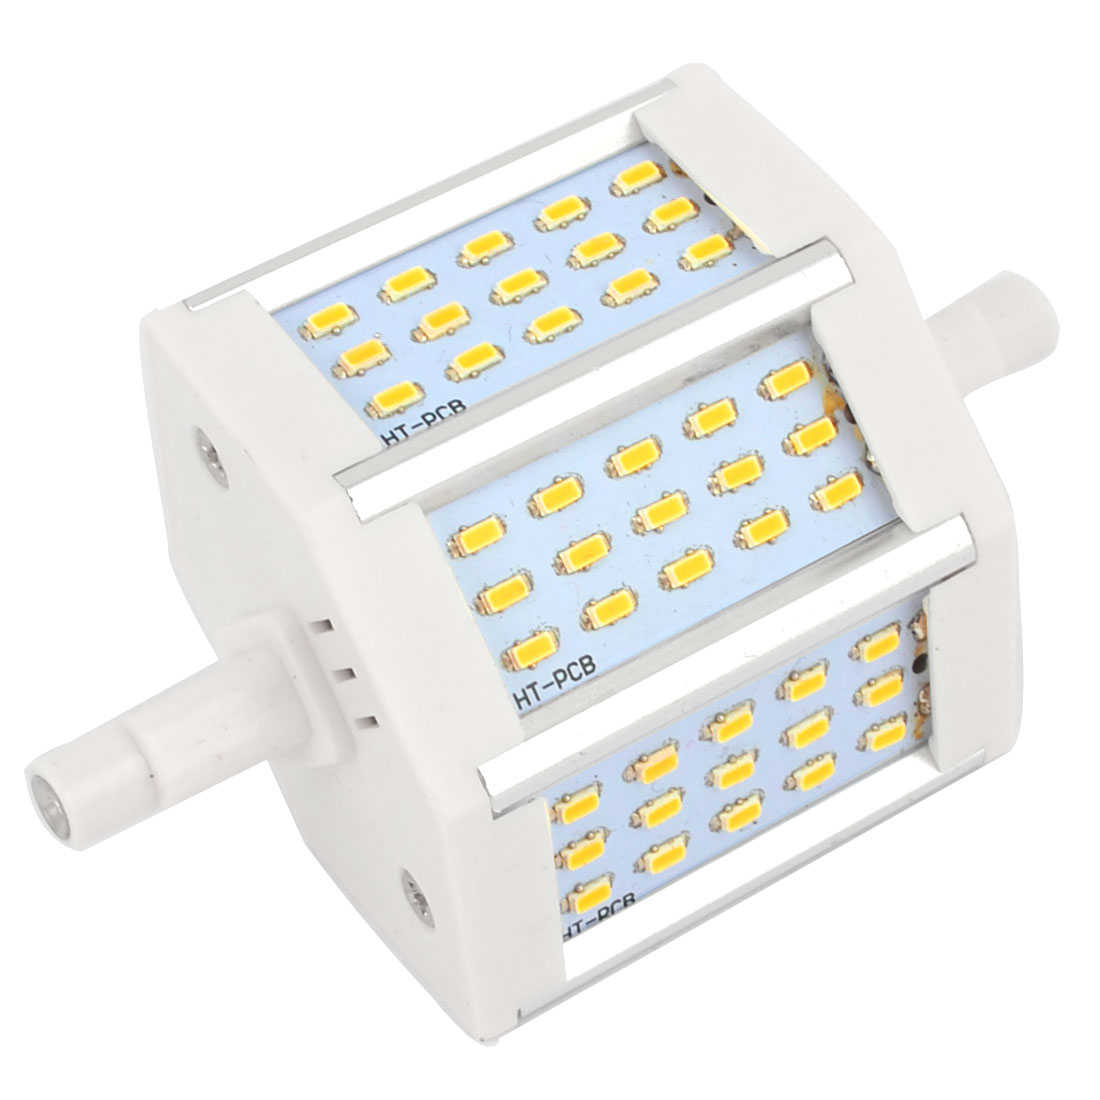 R7S AC85-365V 660LM 45 LEDs SMD 3014 Warm White LED Corn Light Bulb